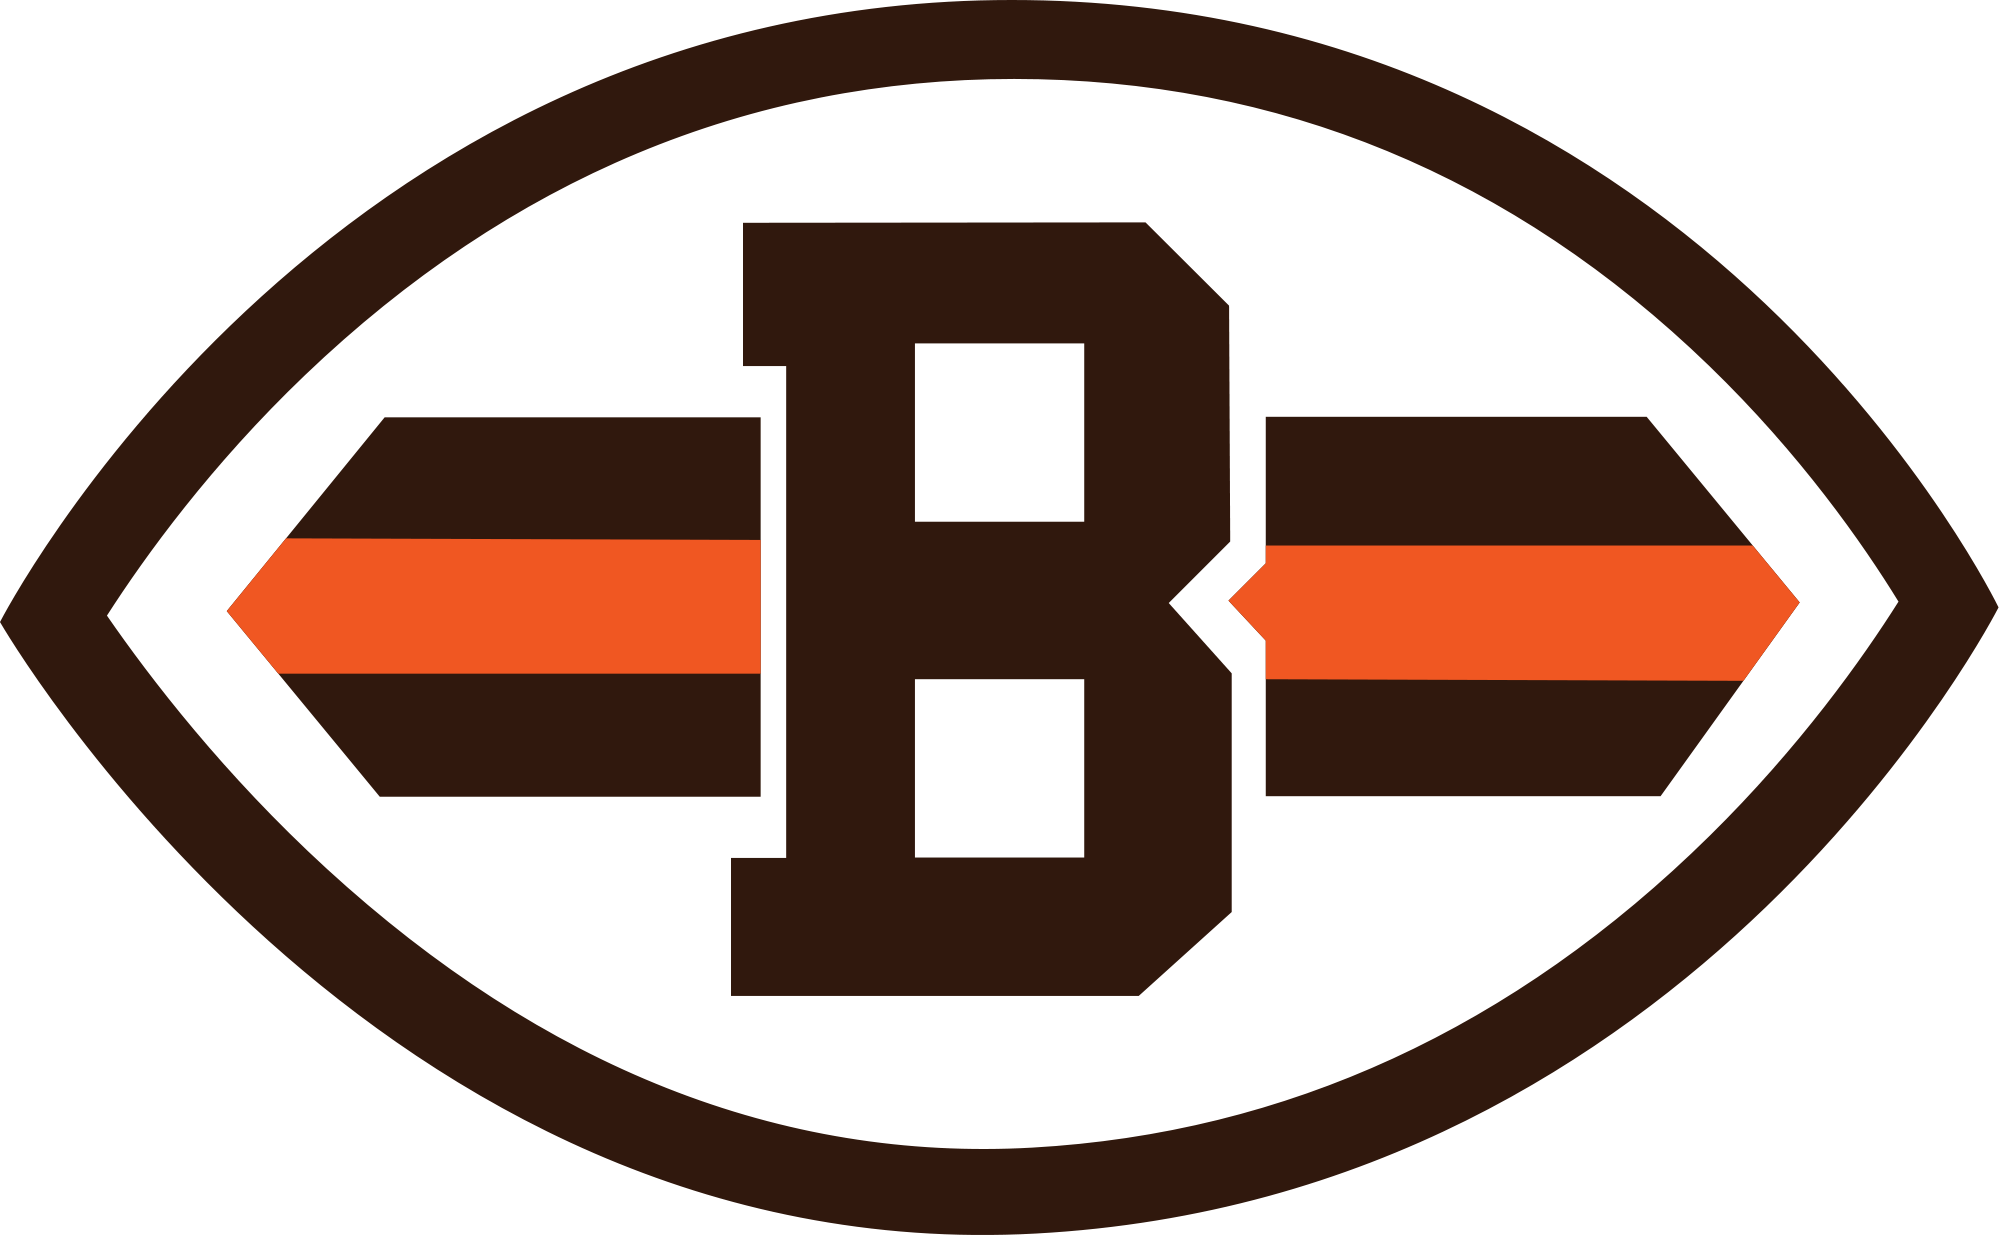 Browns football clipart black and white download Cleveland Browns Logo transparent PNG - StickPNG black and white download